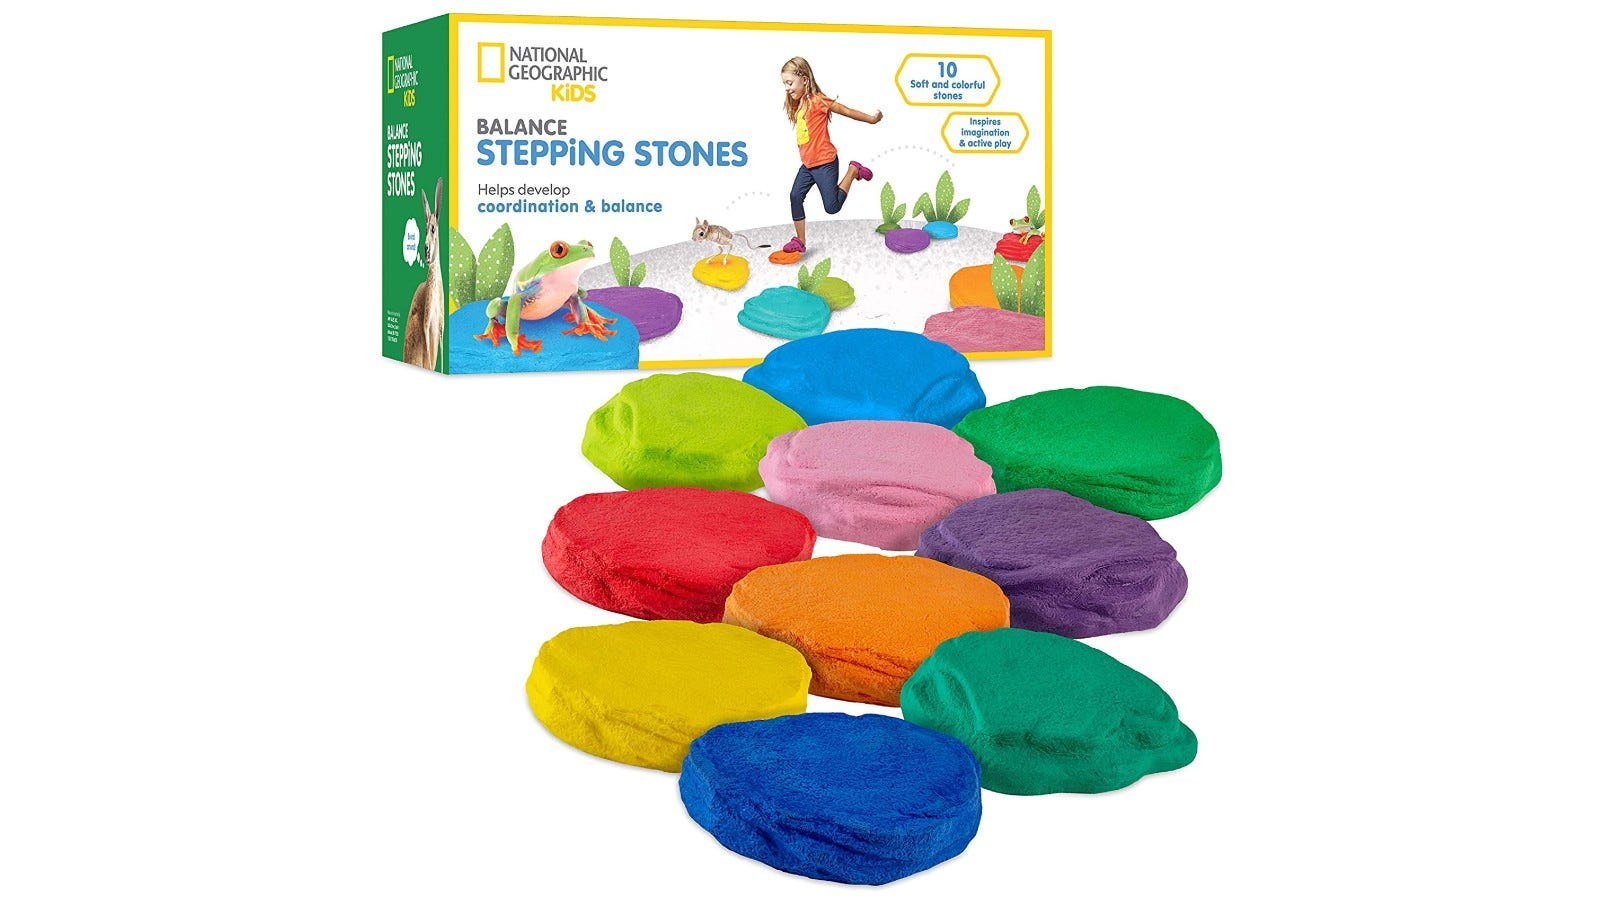 a collection of colorful stepping stones